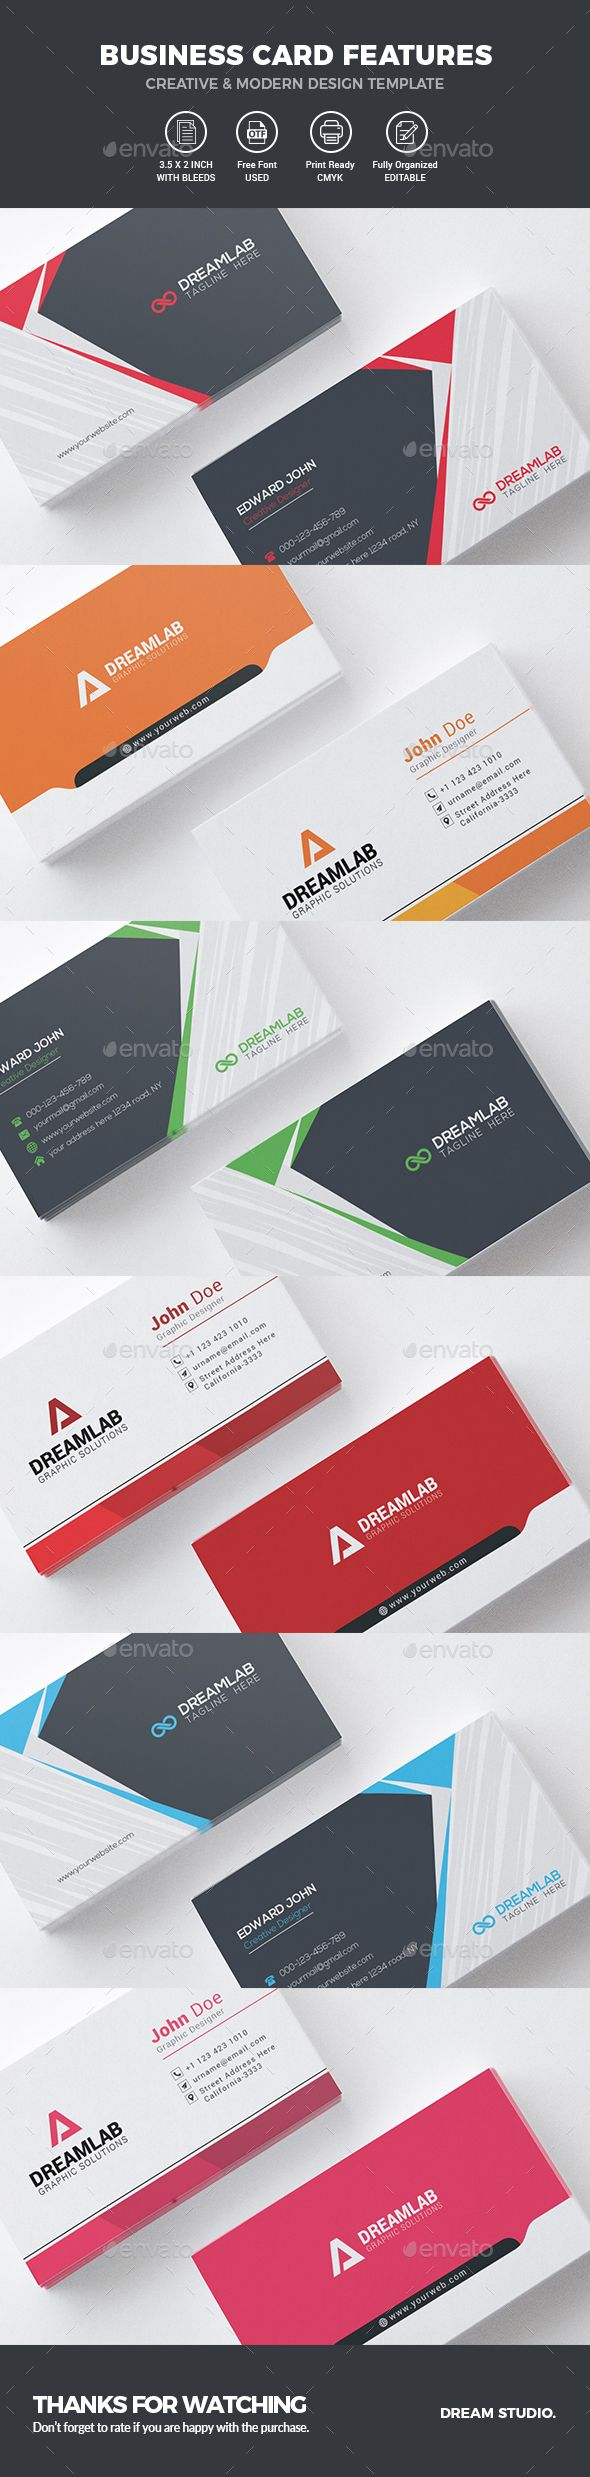 Business card bundle creative business cards download here https business card bundle creative business cards download here https reheart Images